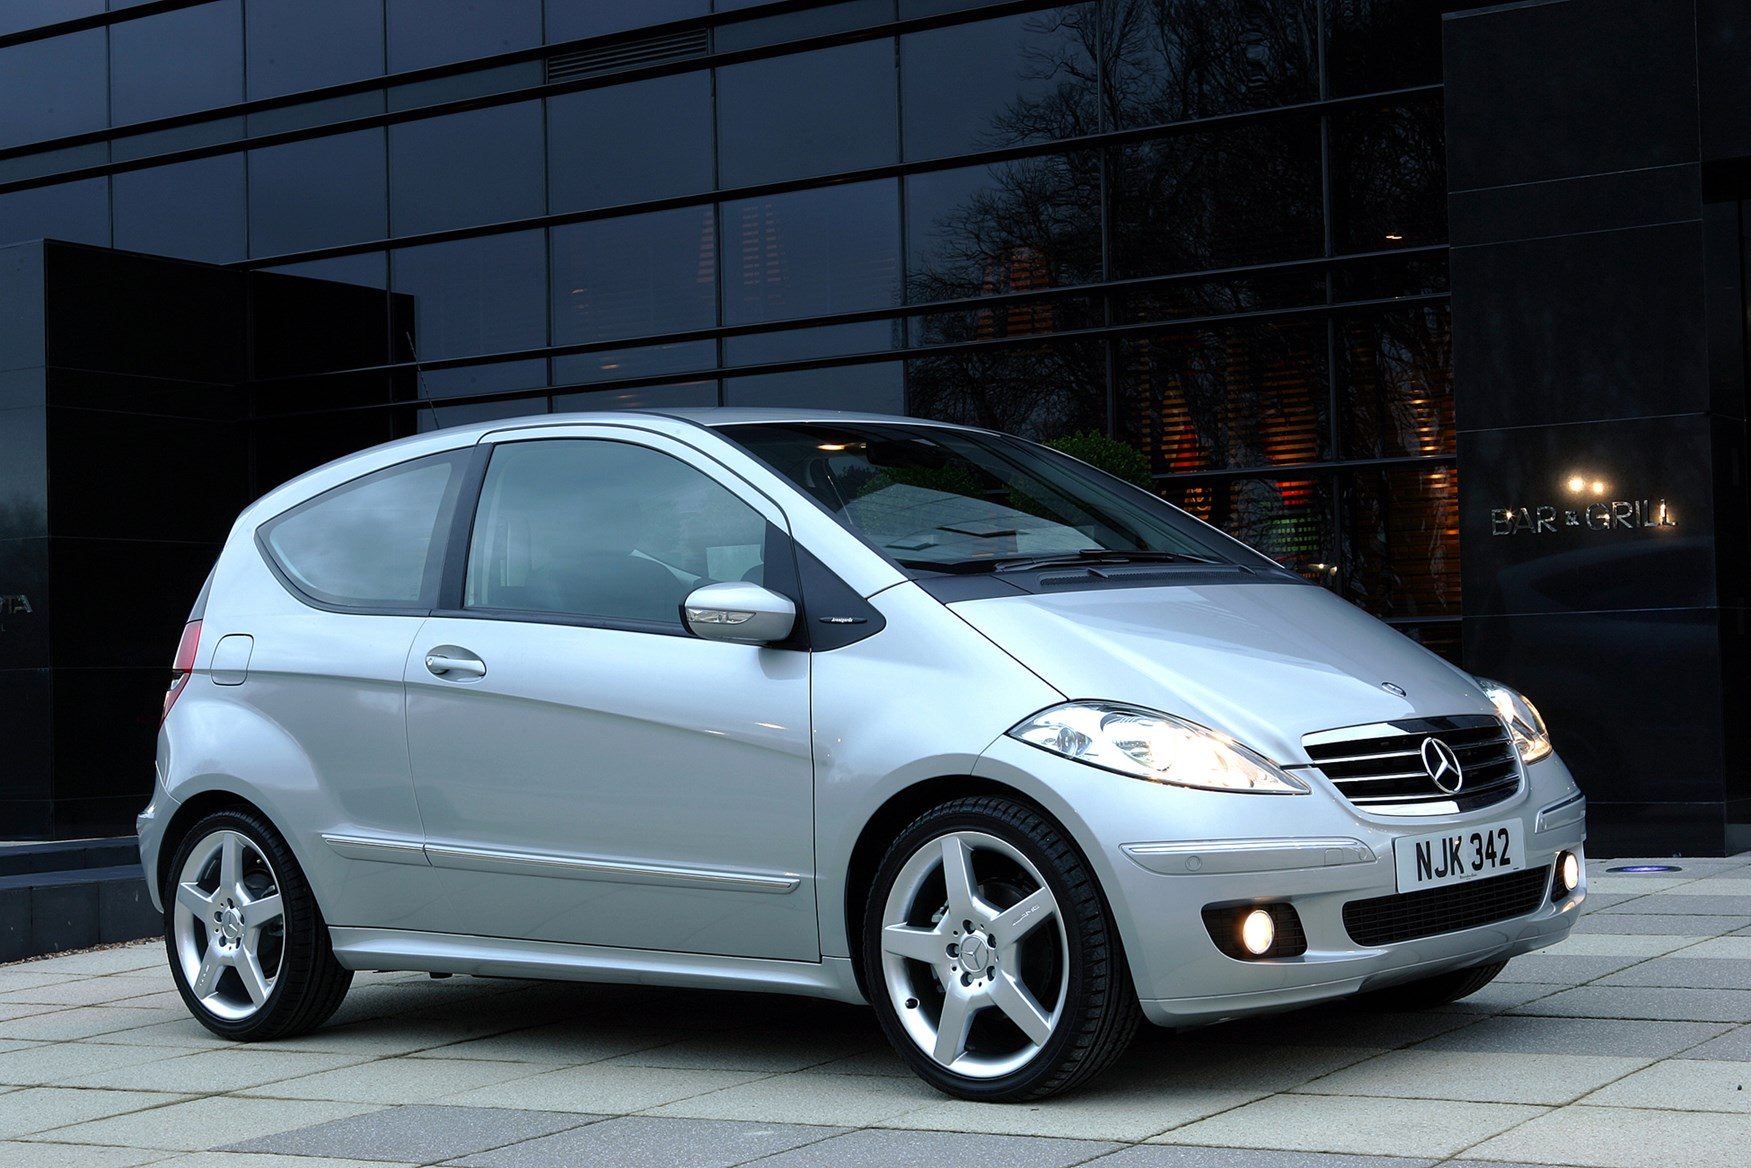 Mercedes benz a class hatchback review 2005 2012 parkers for Mercedes benz how much